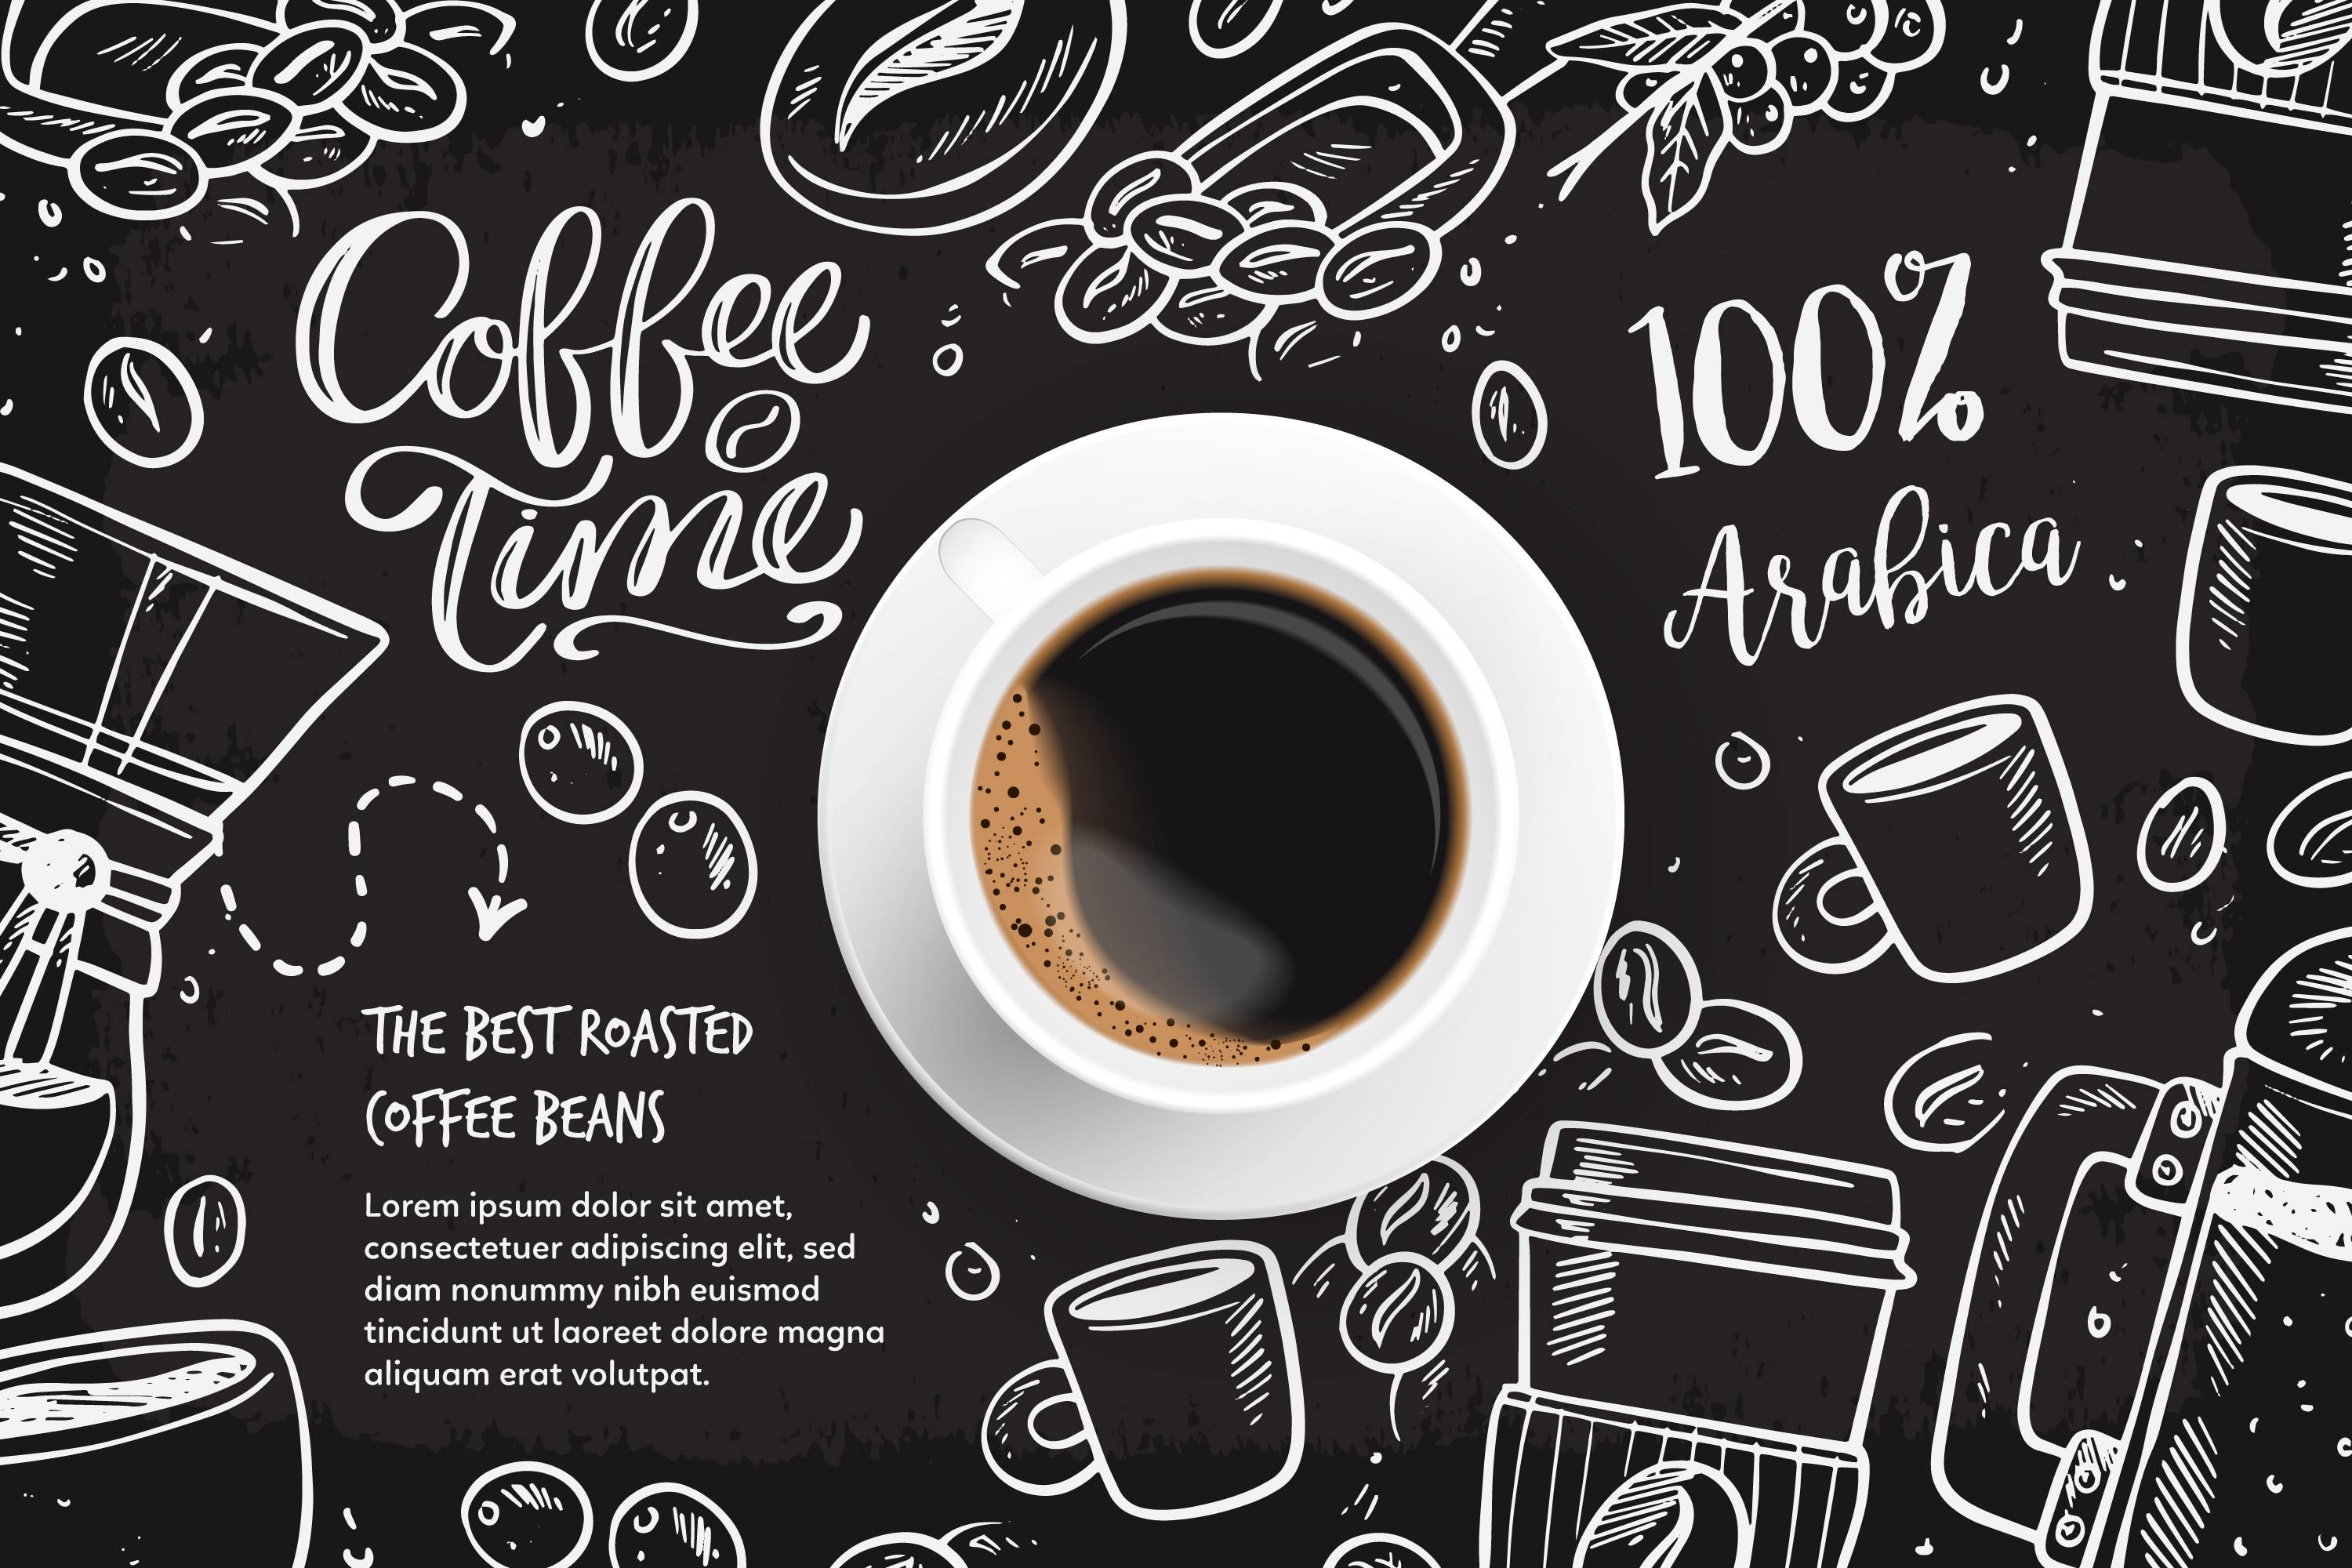 If You Love Coffee But It Makes You Jittery, You Need To Try This